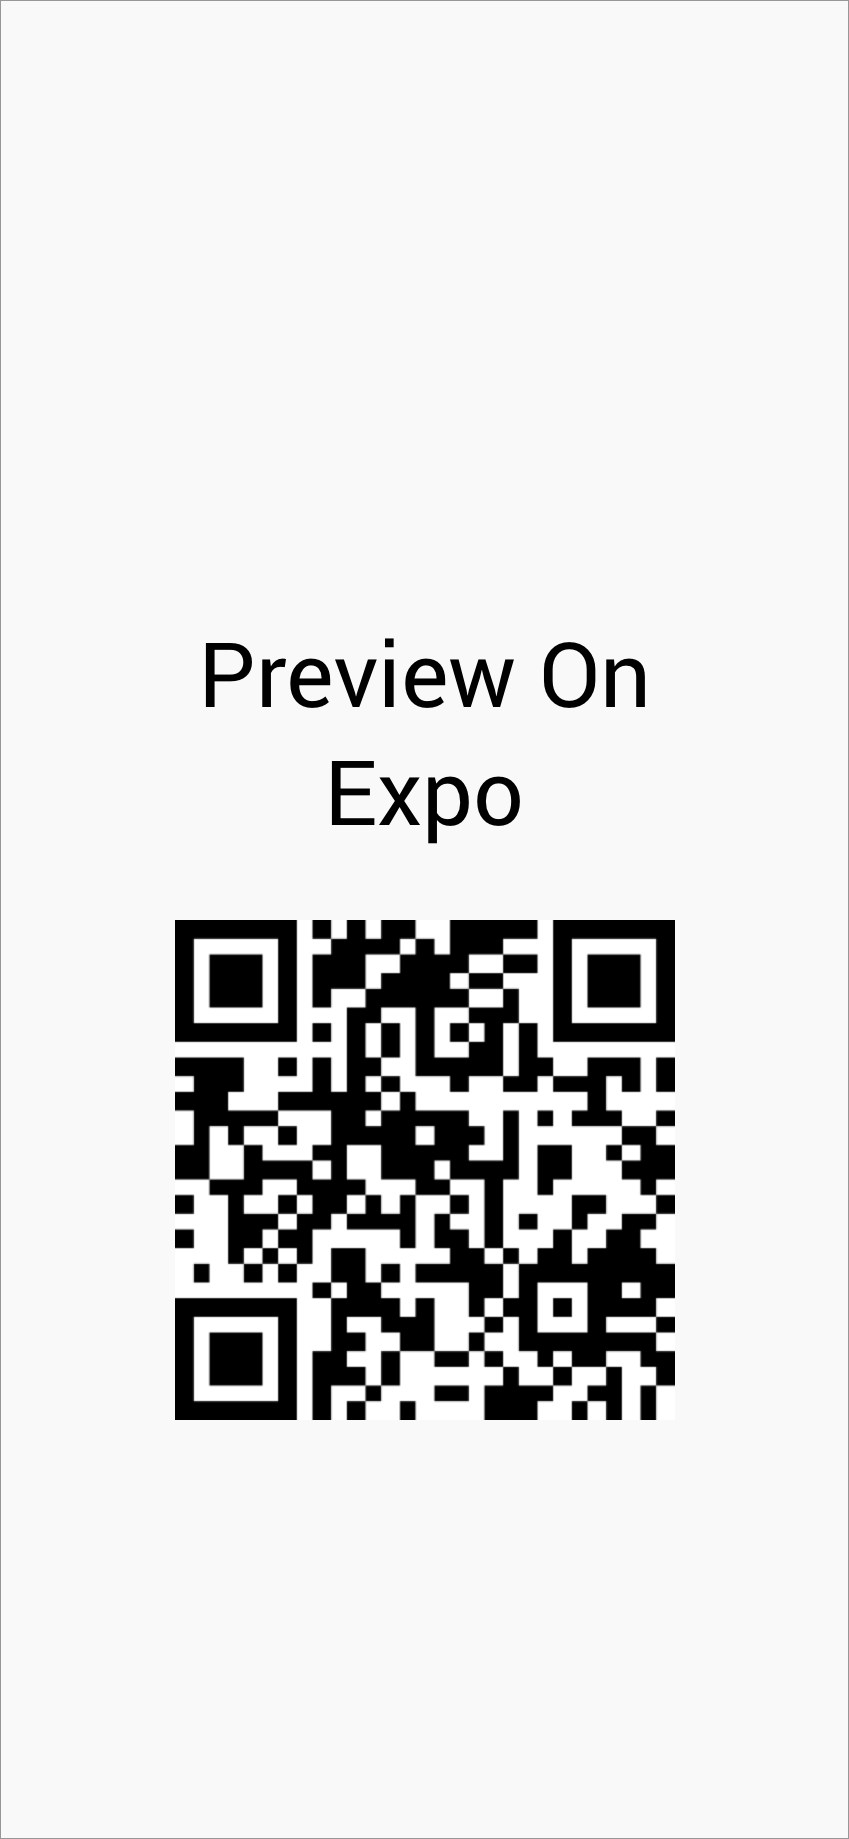 Scan With Expo